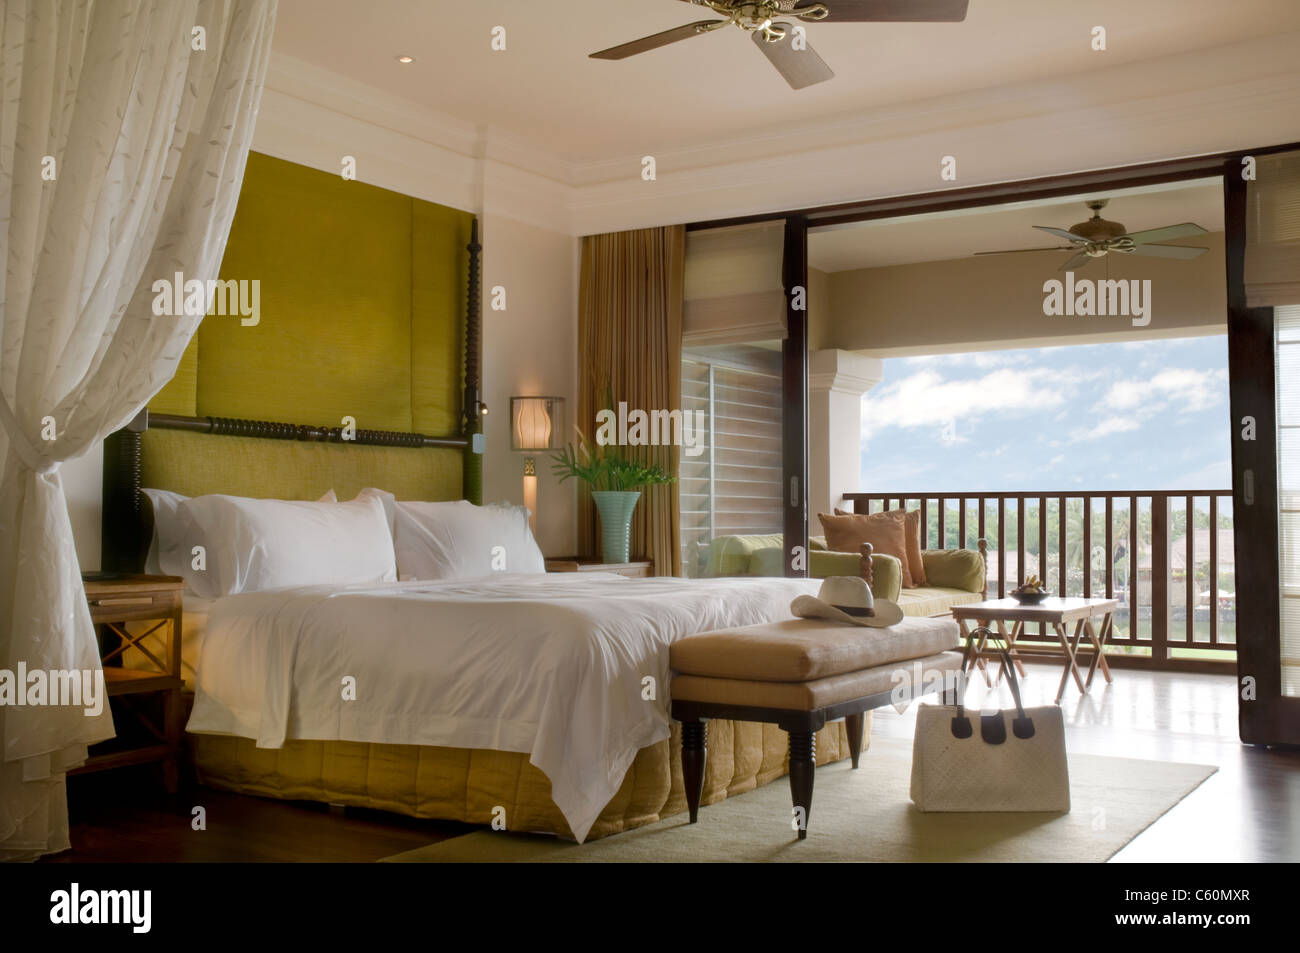 Suite bed room with balcony of a luxury resort on a sunny day - Stock Image